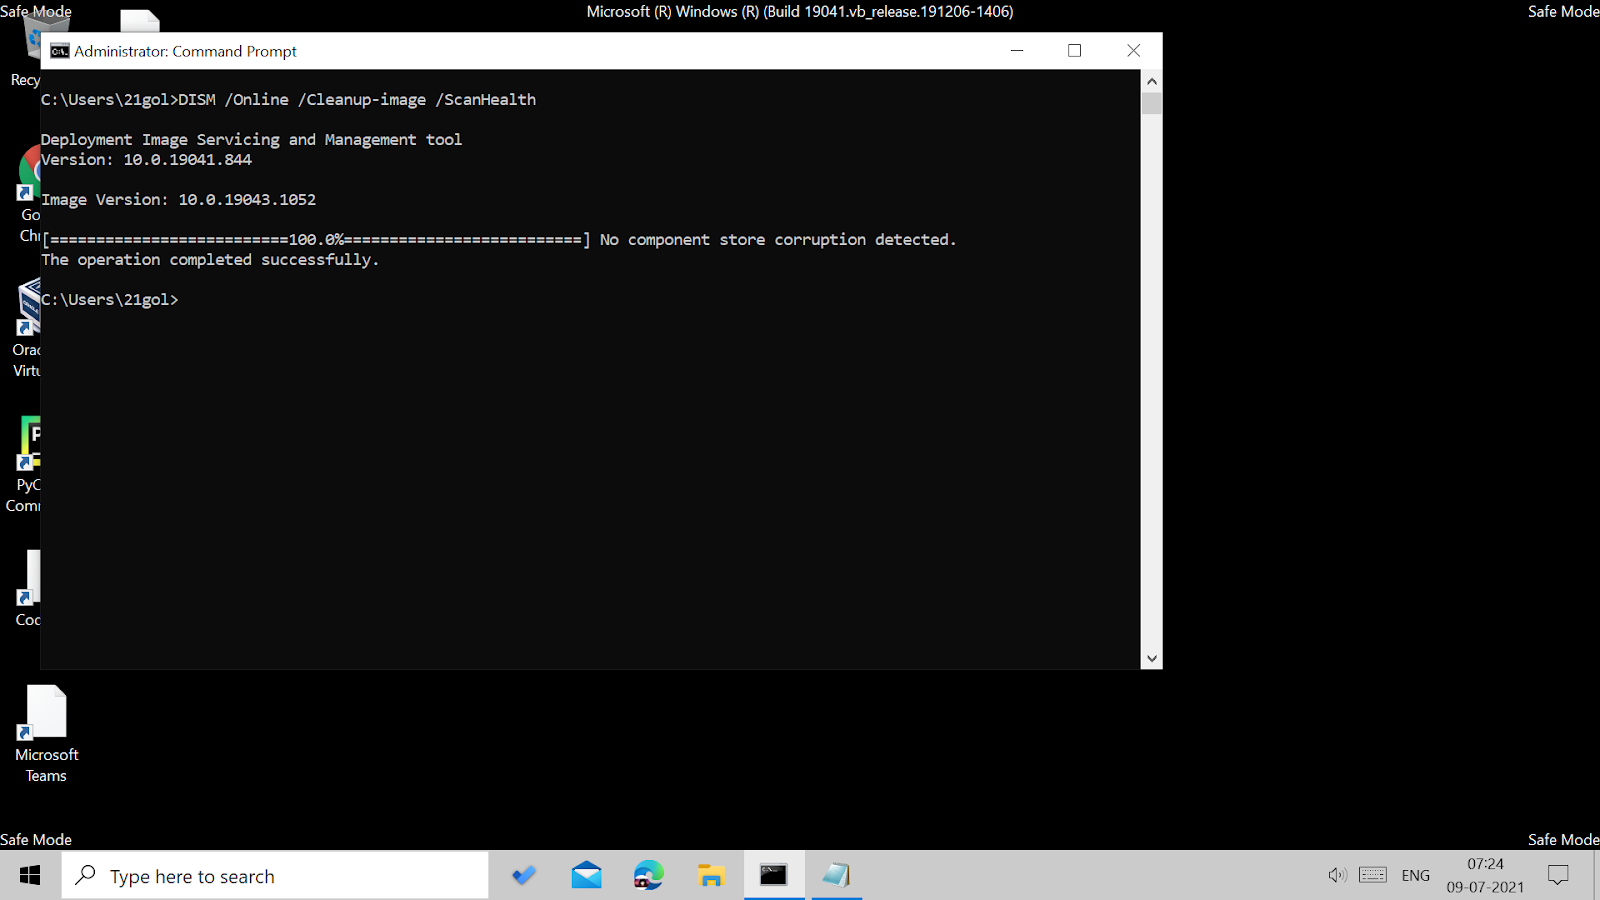 Running DISM scan in the command prompt